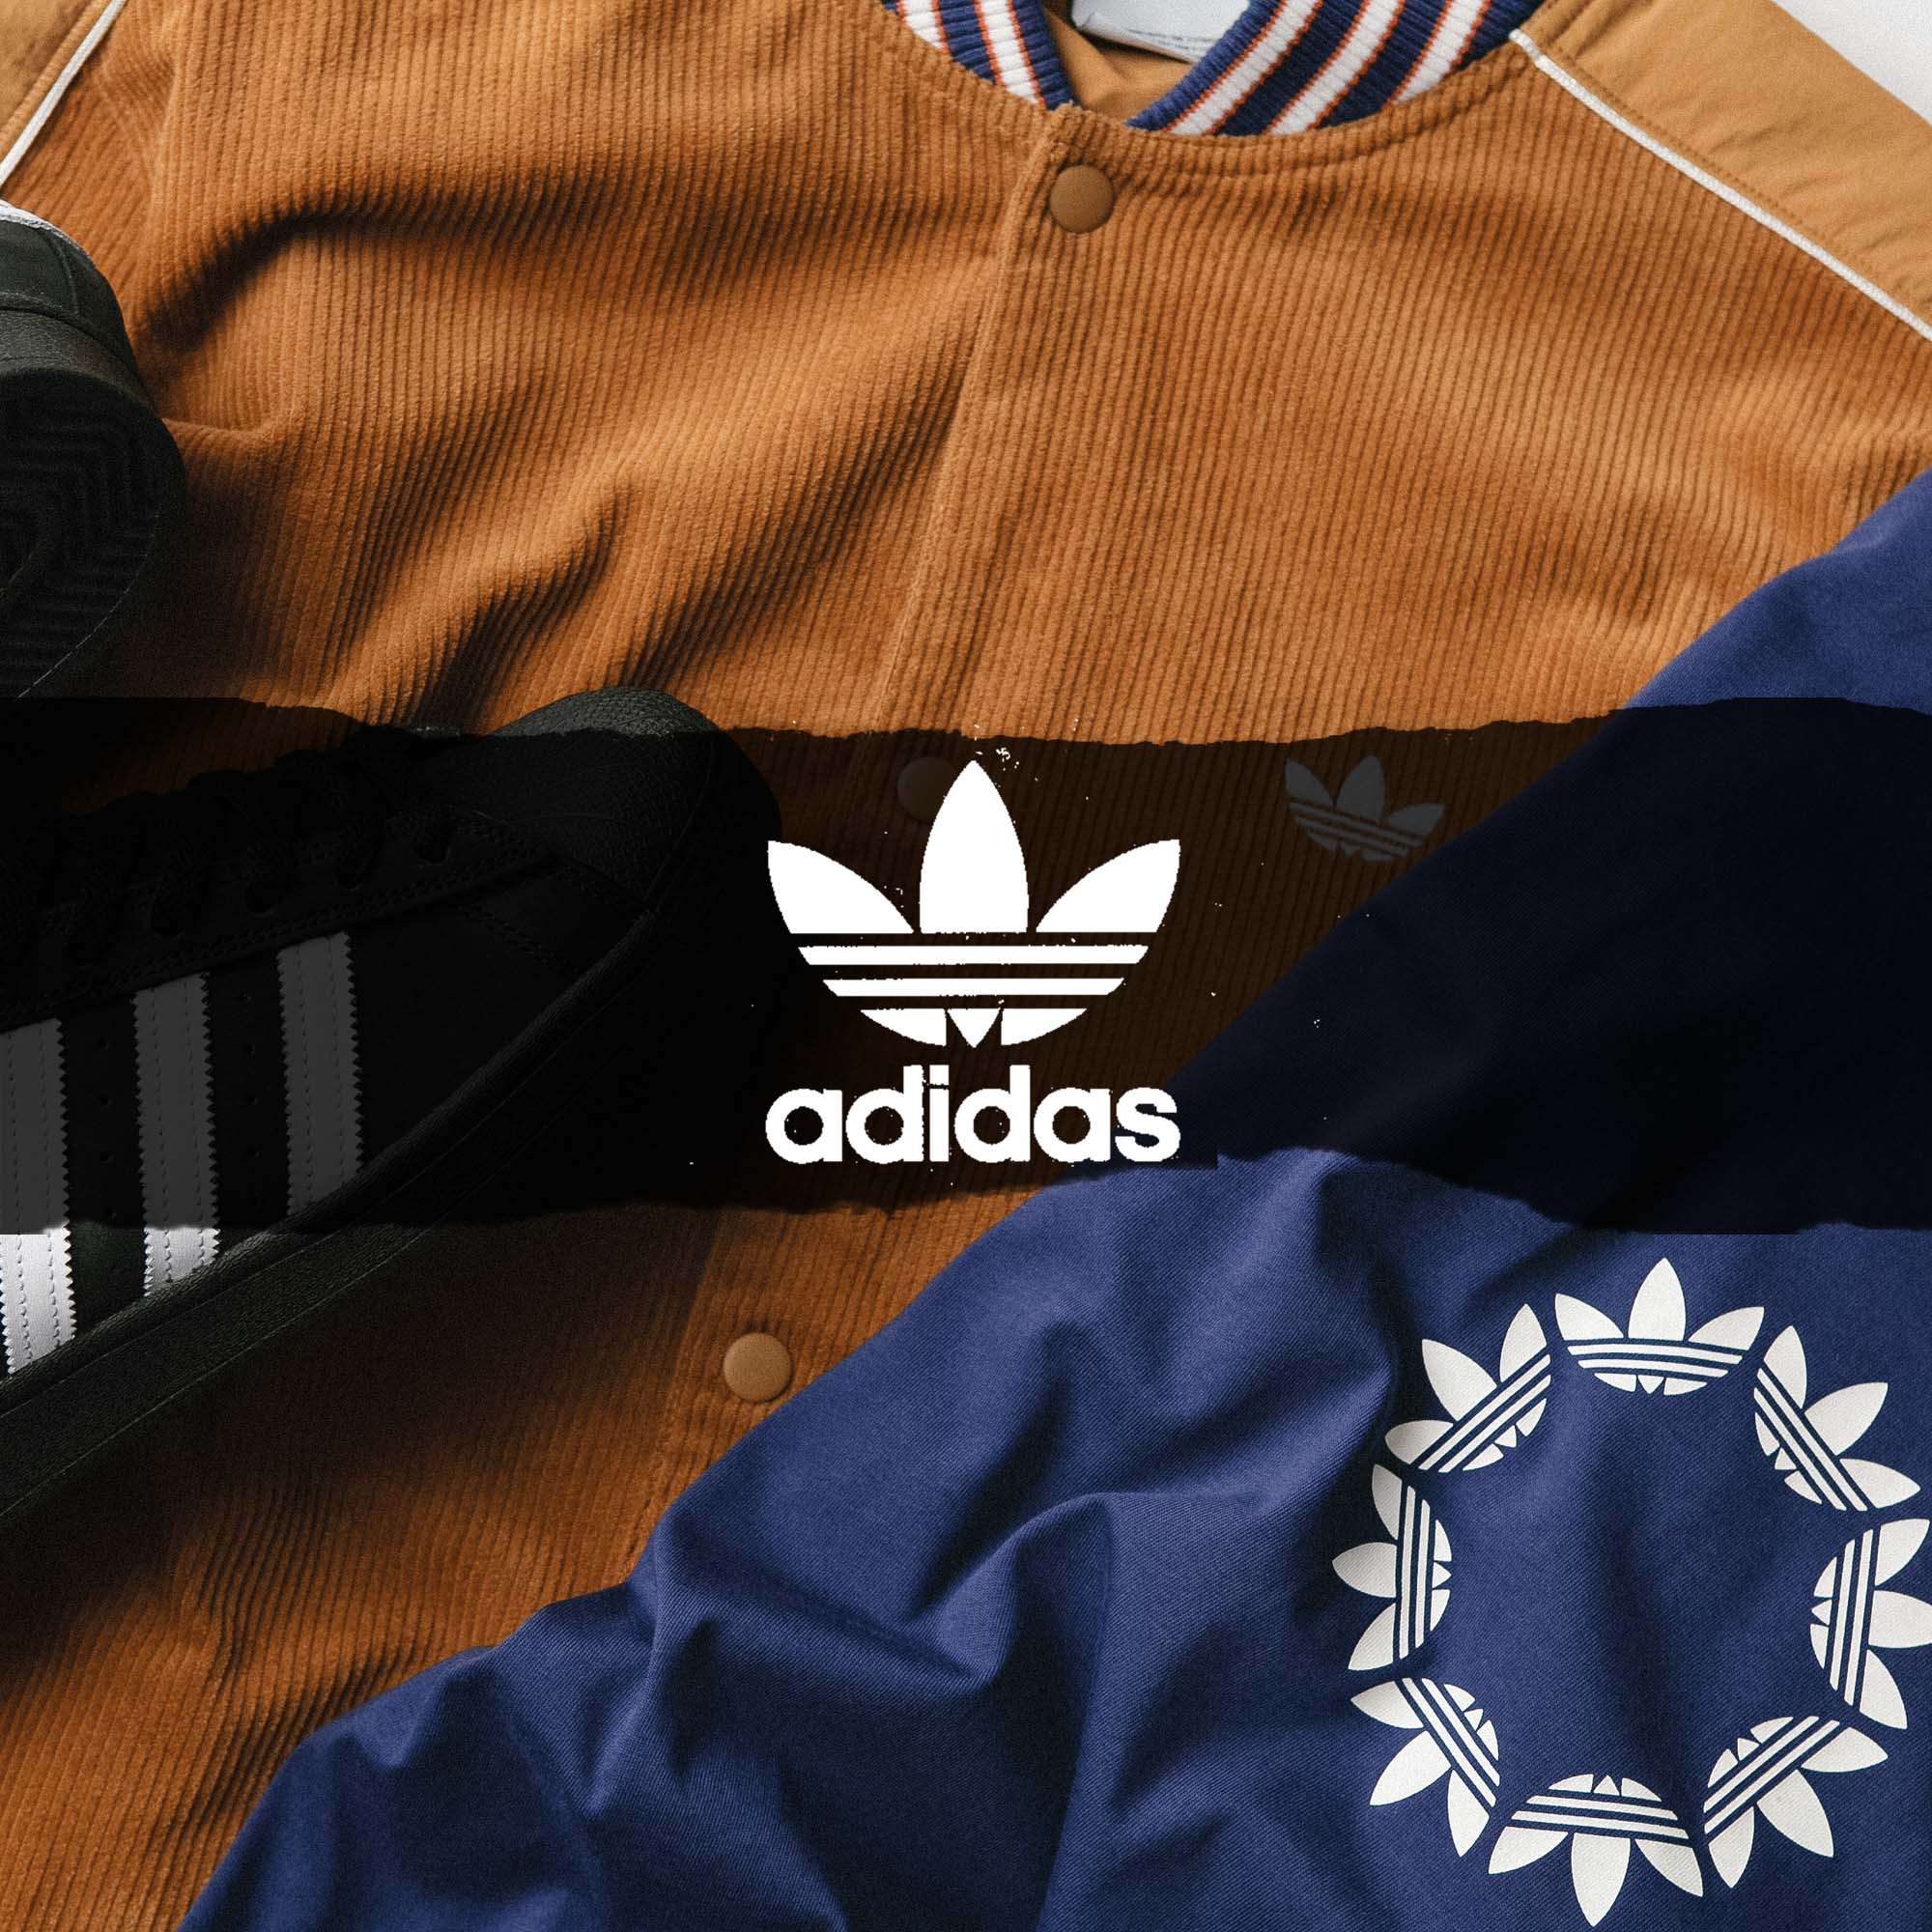 adidas SS20: Collection Overview | Flatspot